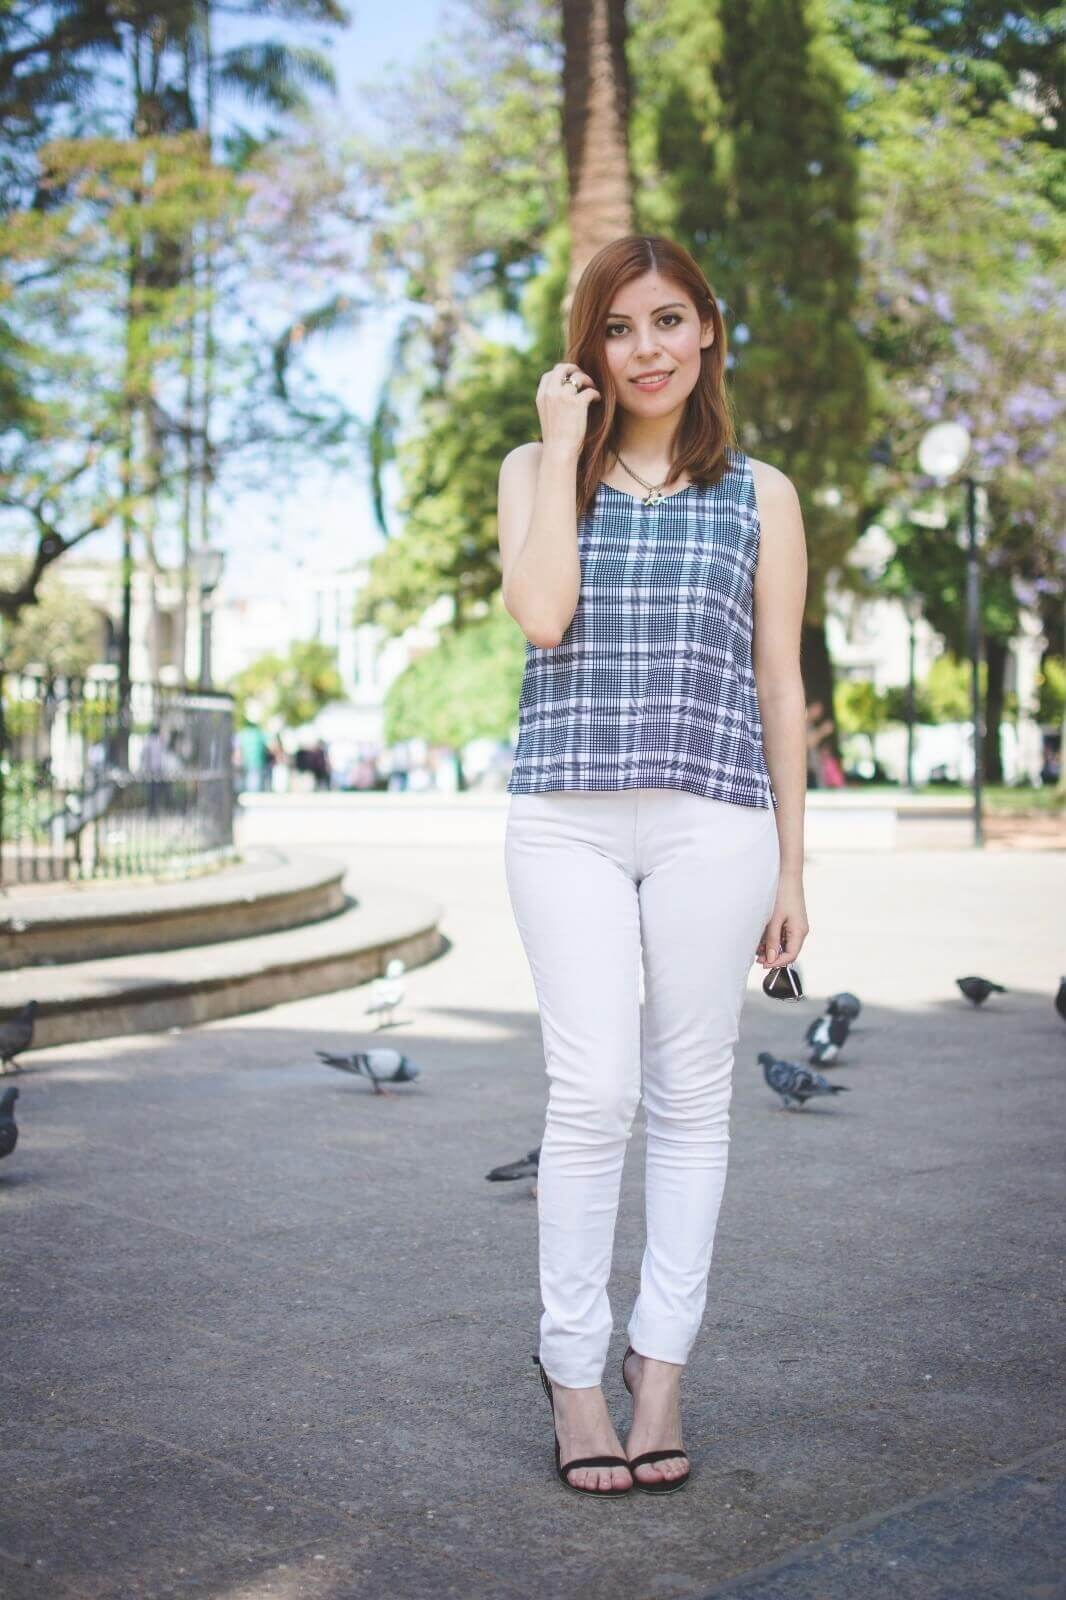 black-and-white-top-skinny-jeans-deborah-ferrero-style-by-deb-gamiss-sandals-streetstyle04